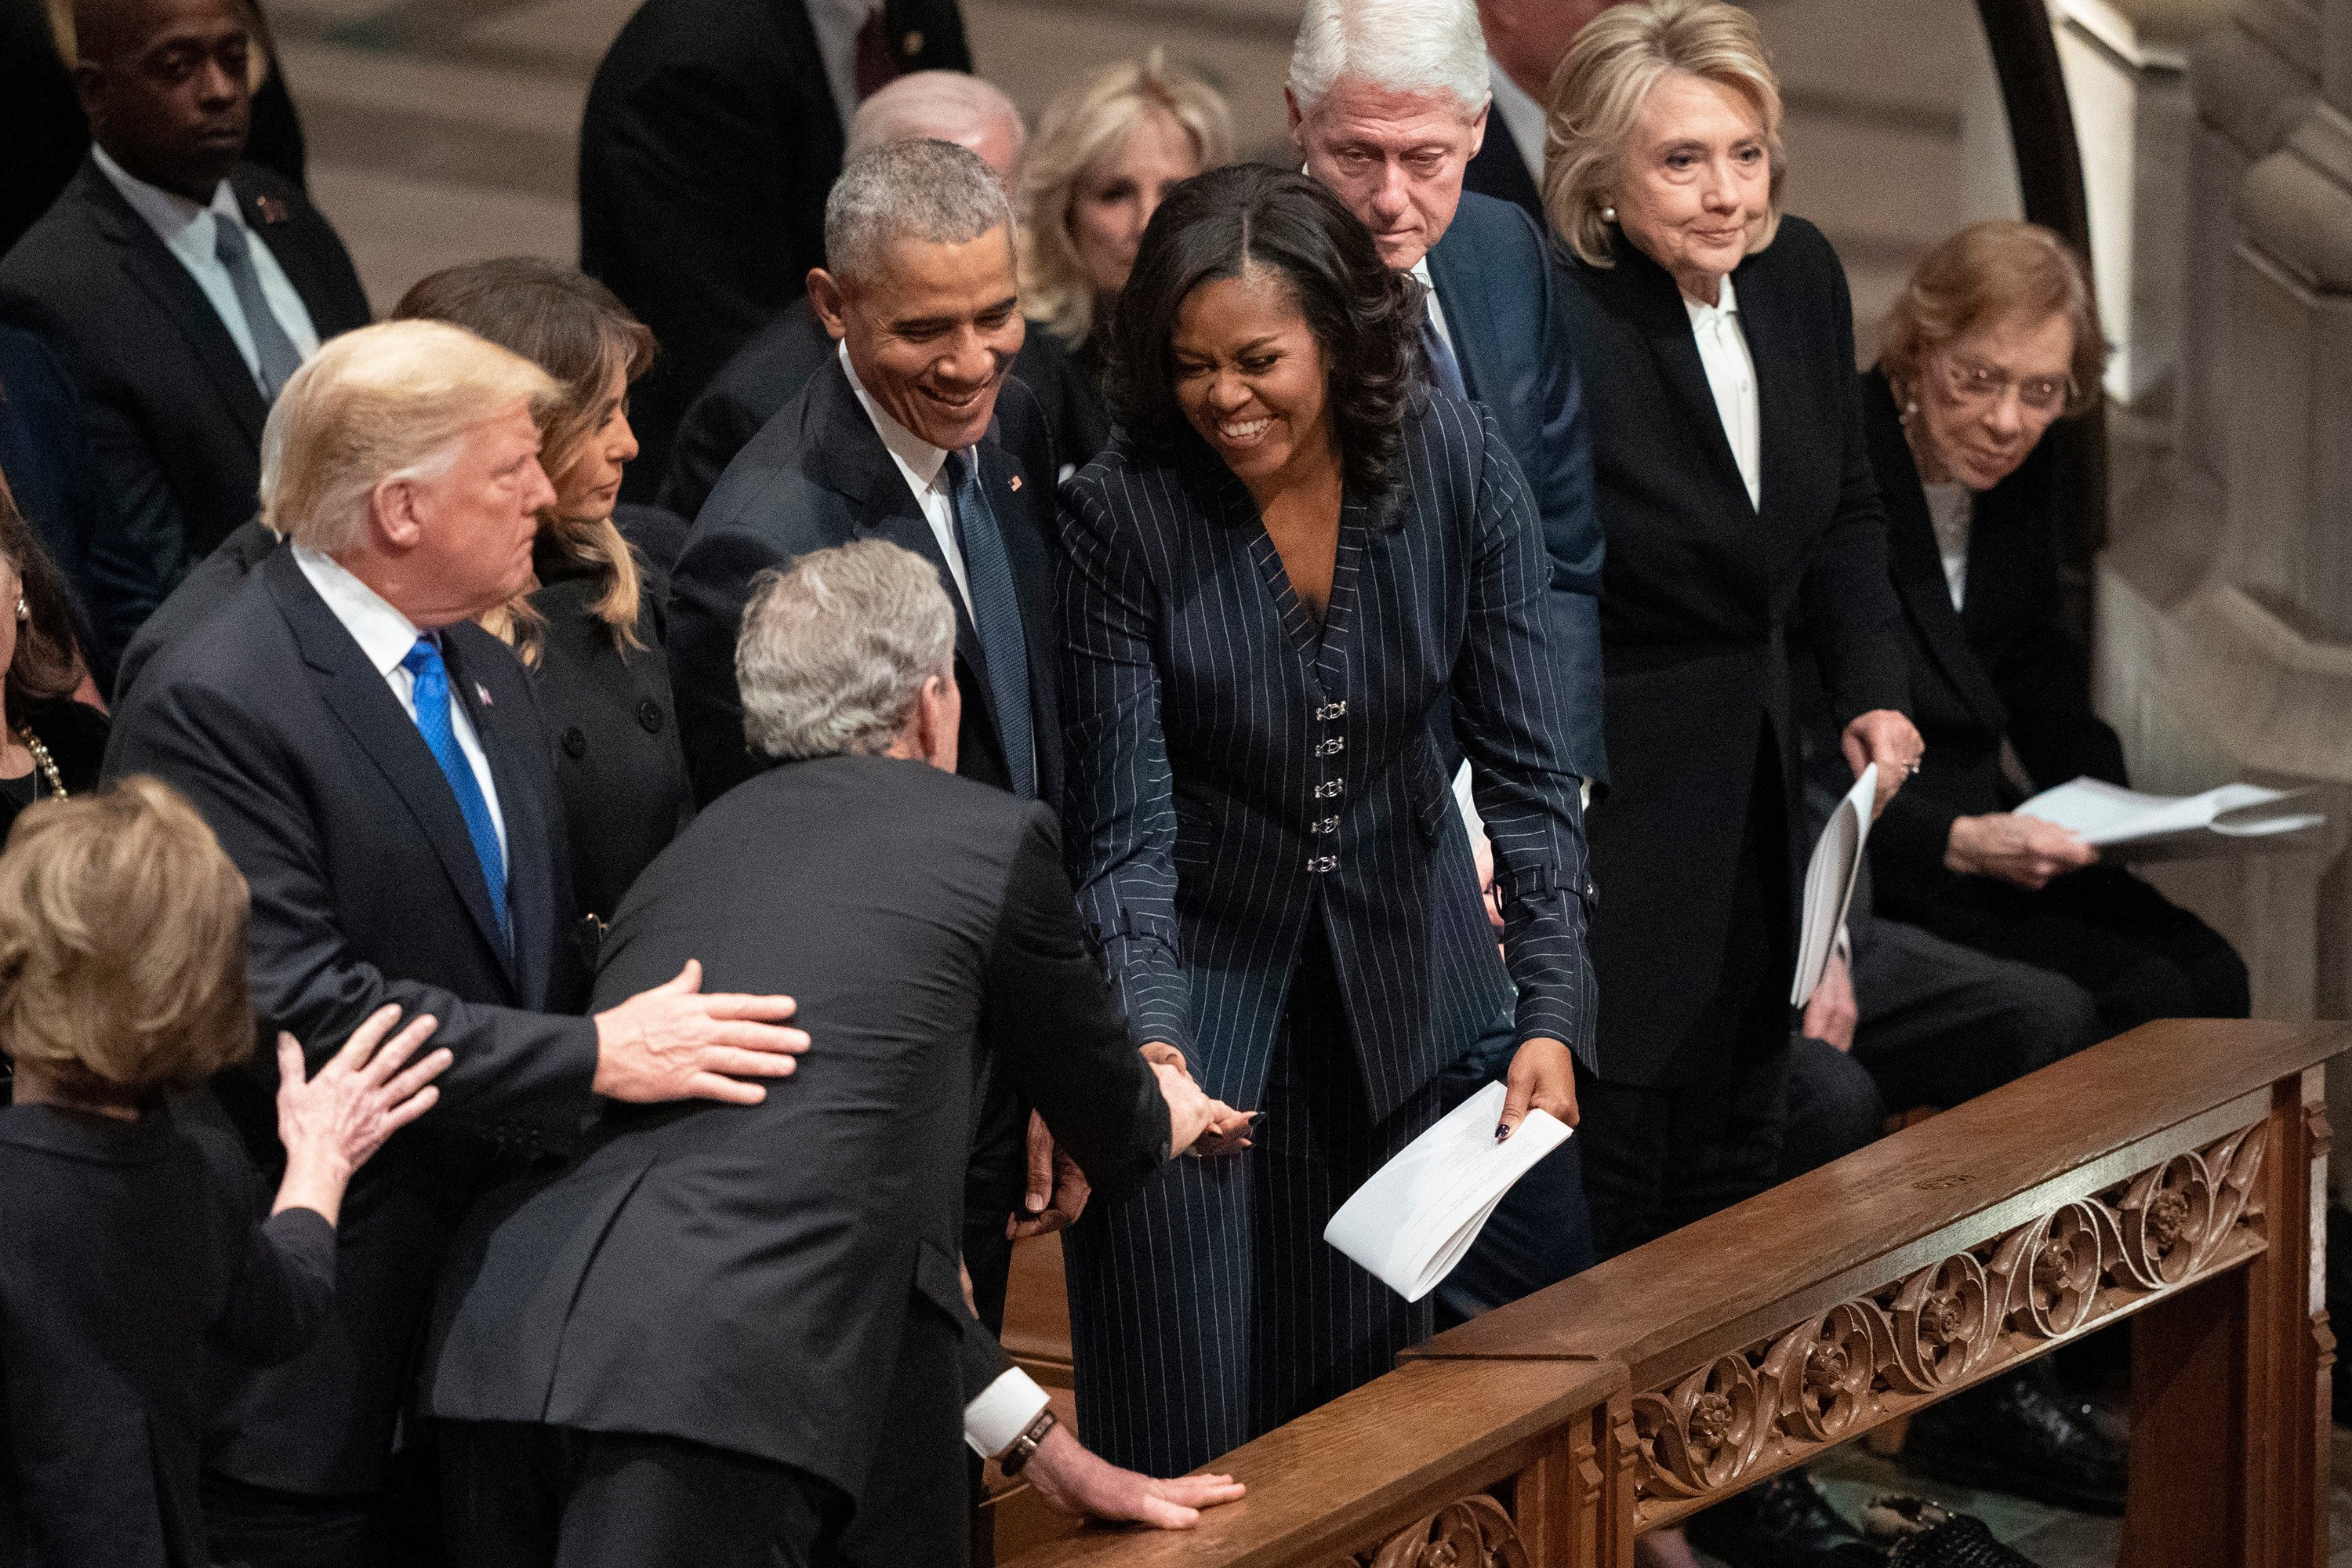 George W. Bush sneaks Michelle Obama a cough drop at his dad's funeral